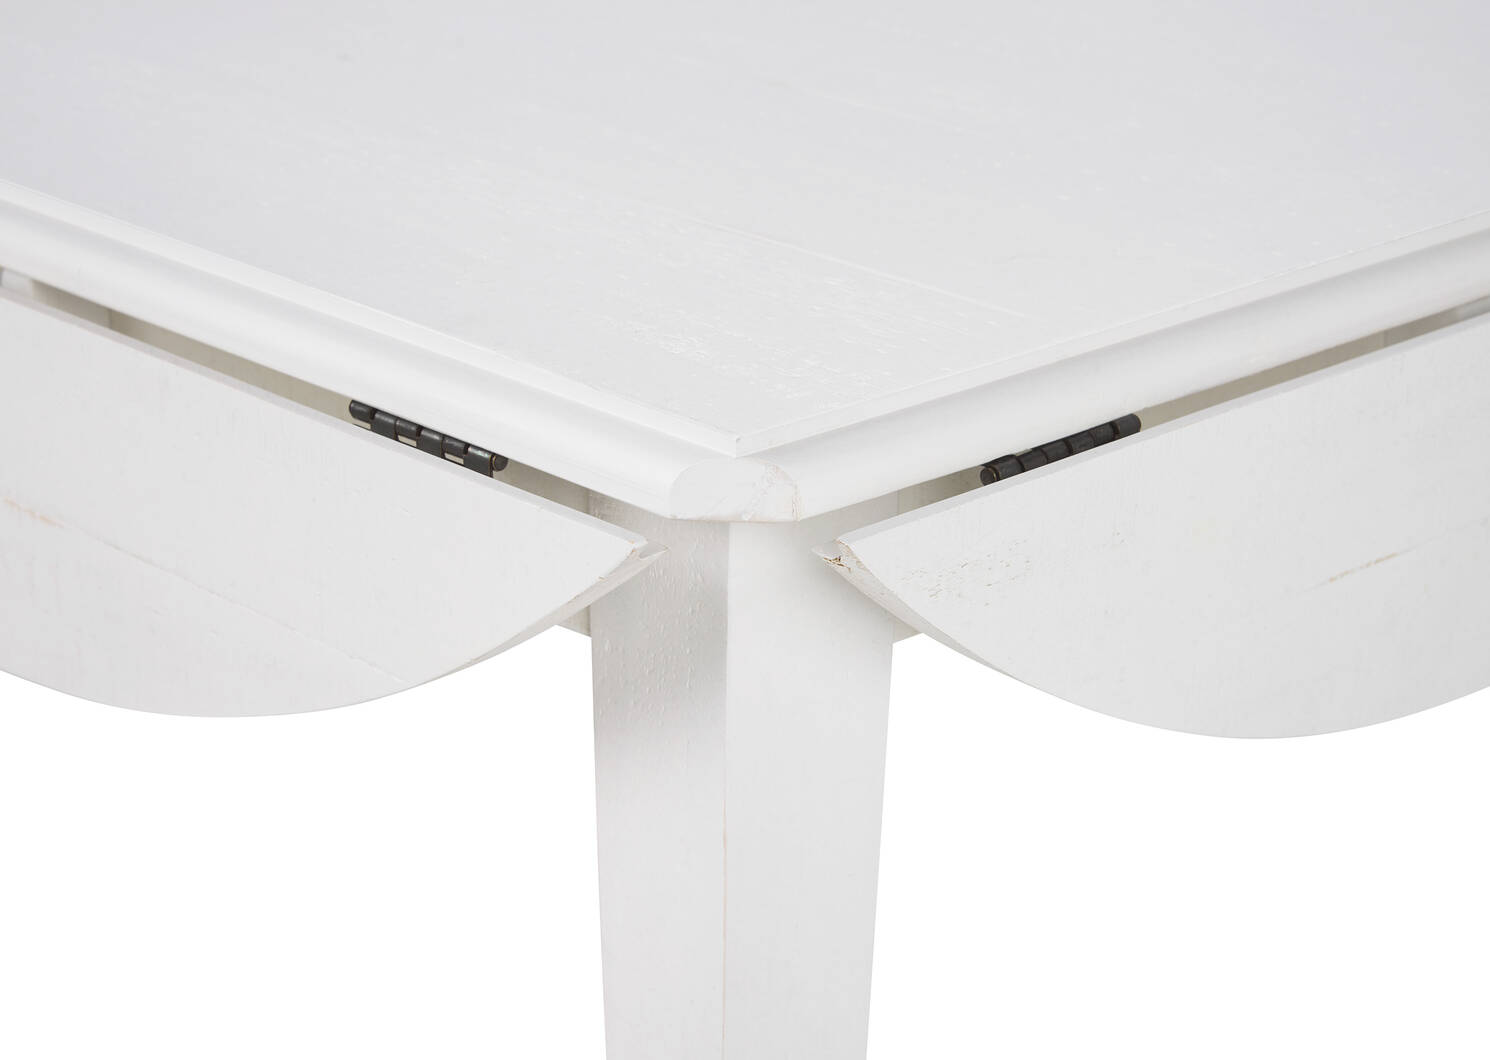 Febe Drop Leaf Dining Table -Heron White